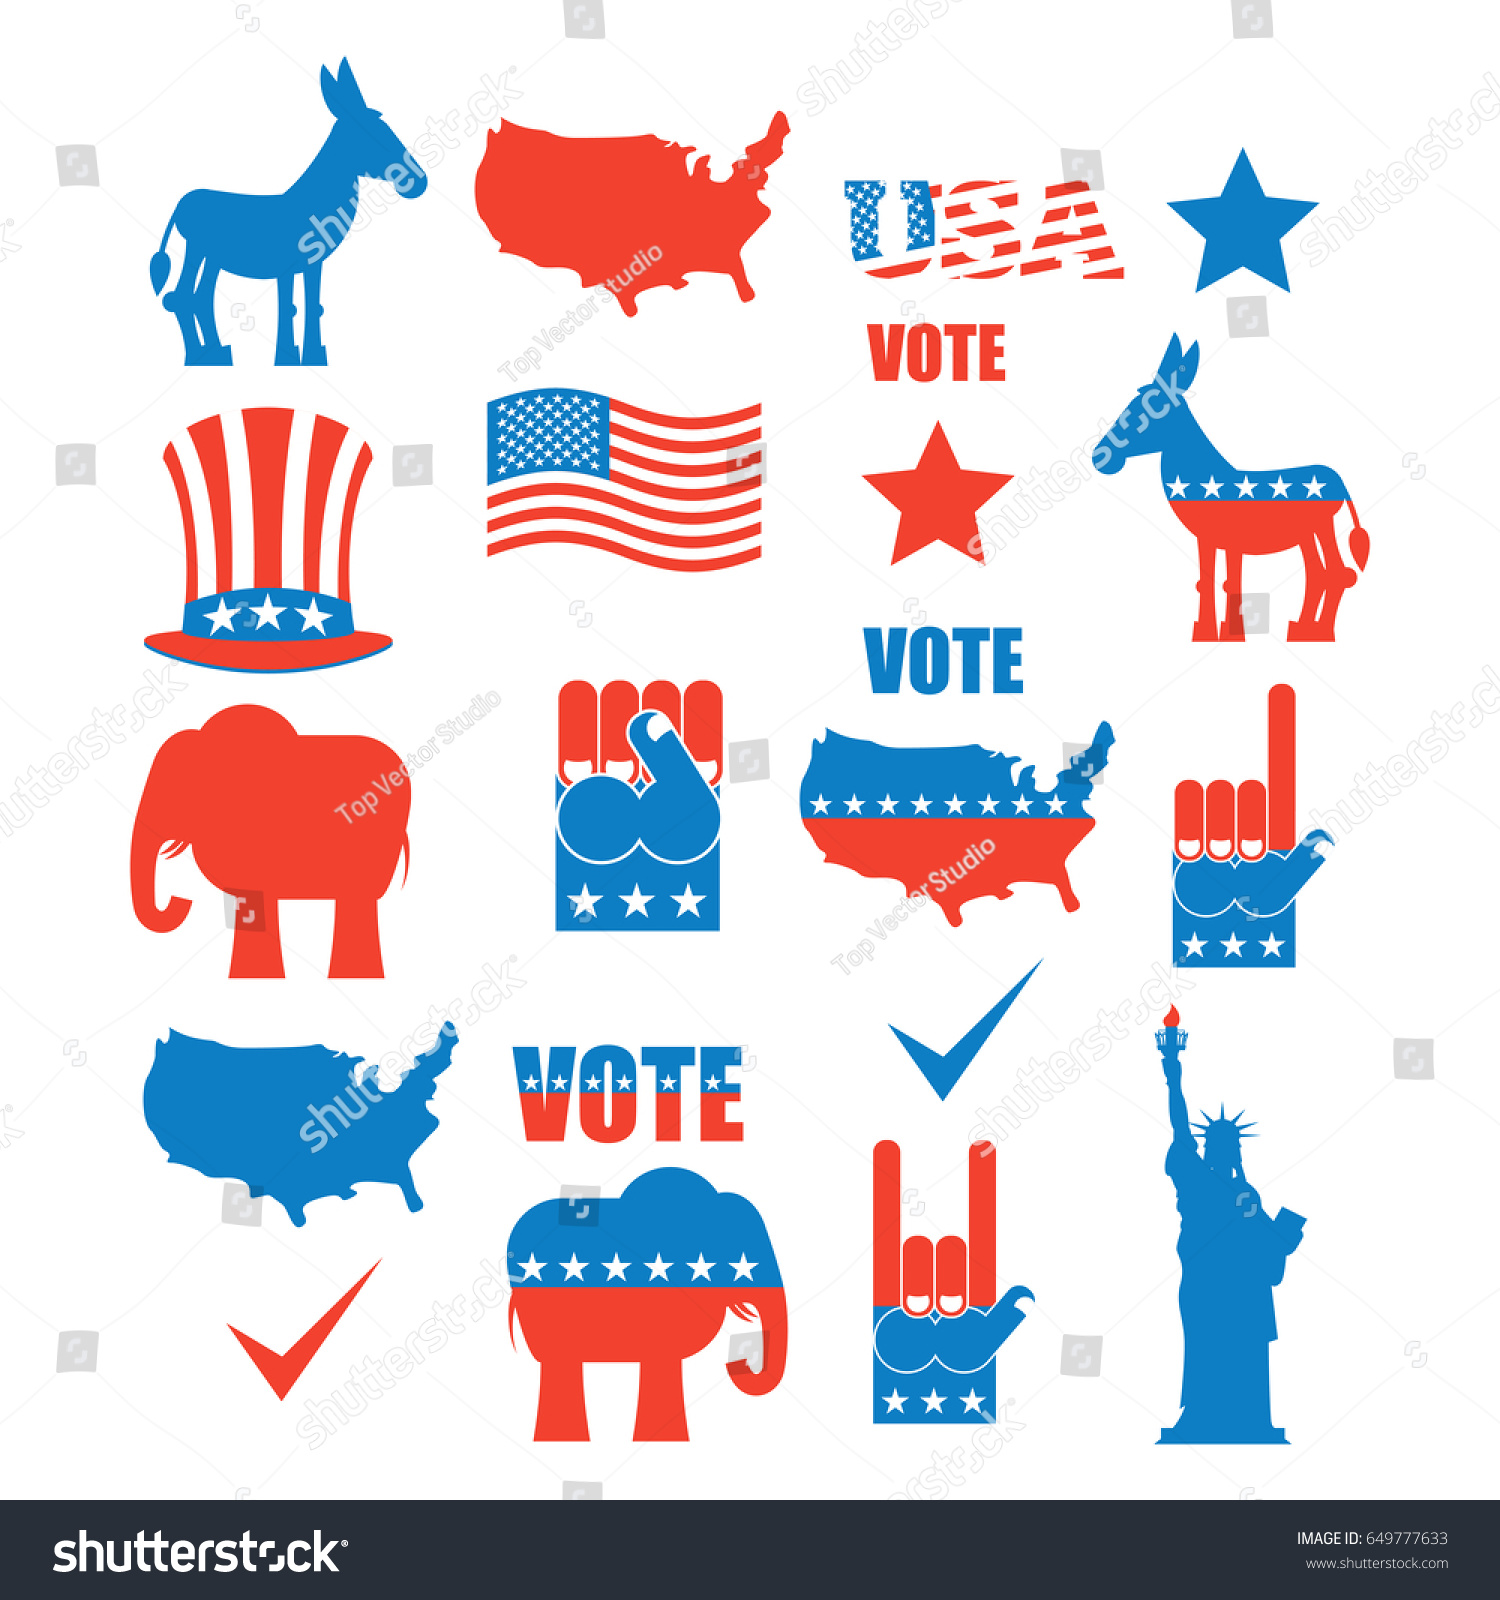 Stock images royalty free images vectors shutterstock republican elephant and democratic donkey symbols of political parties in buycottarizona